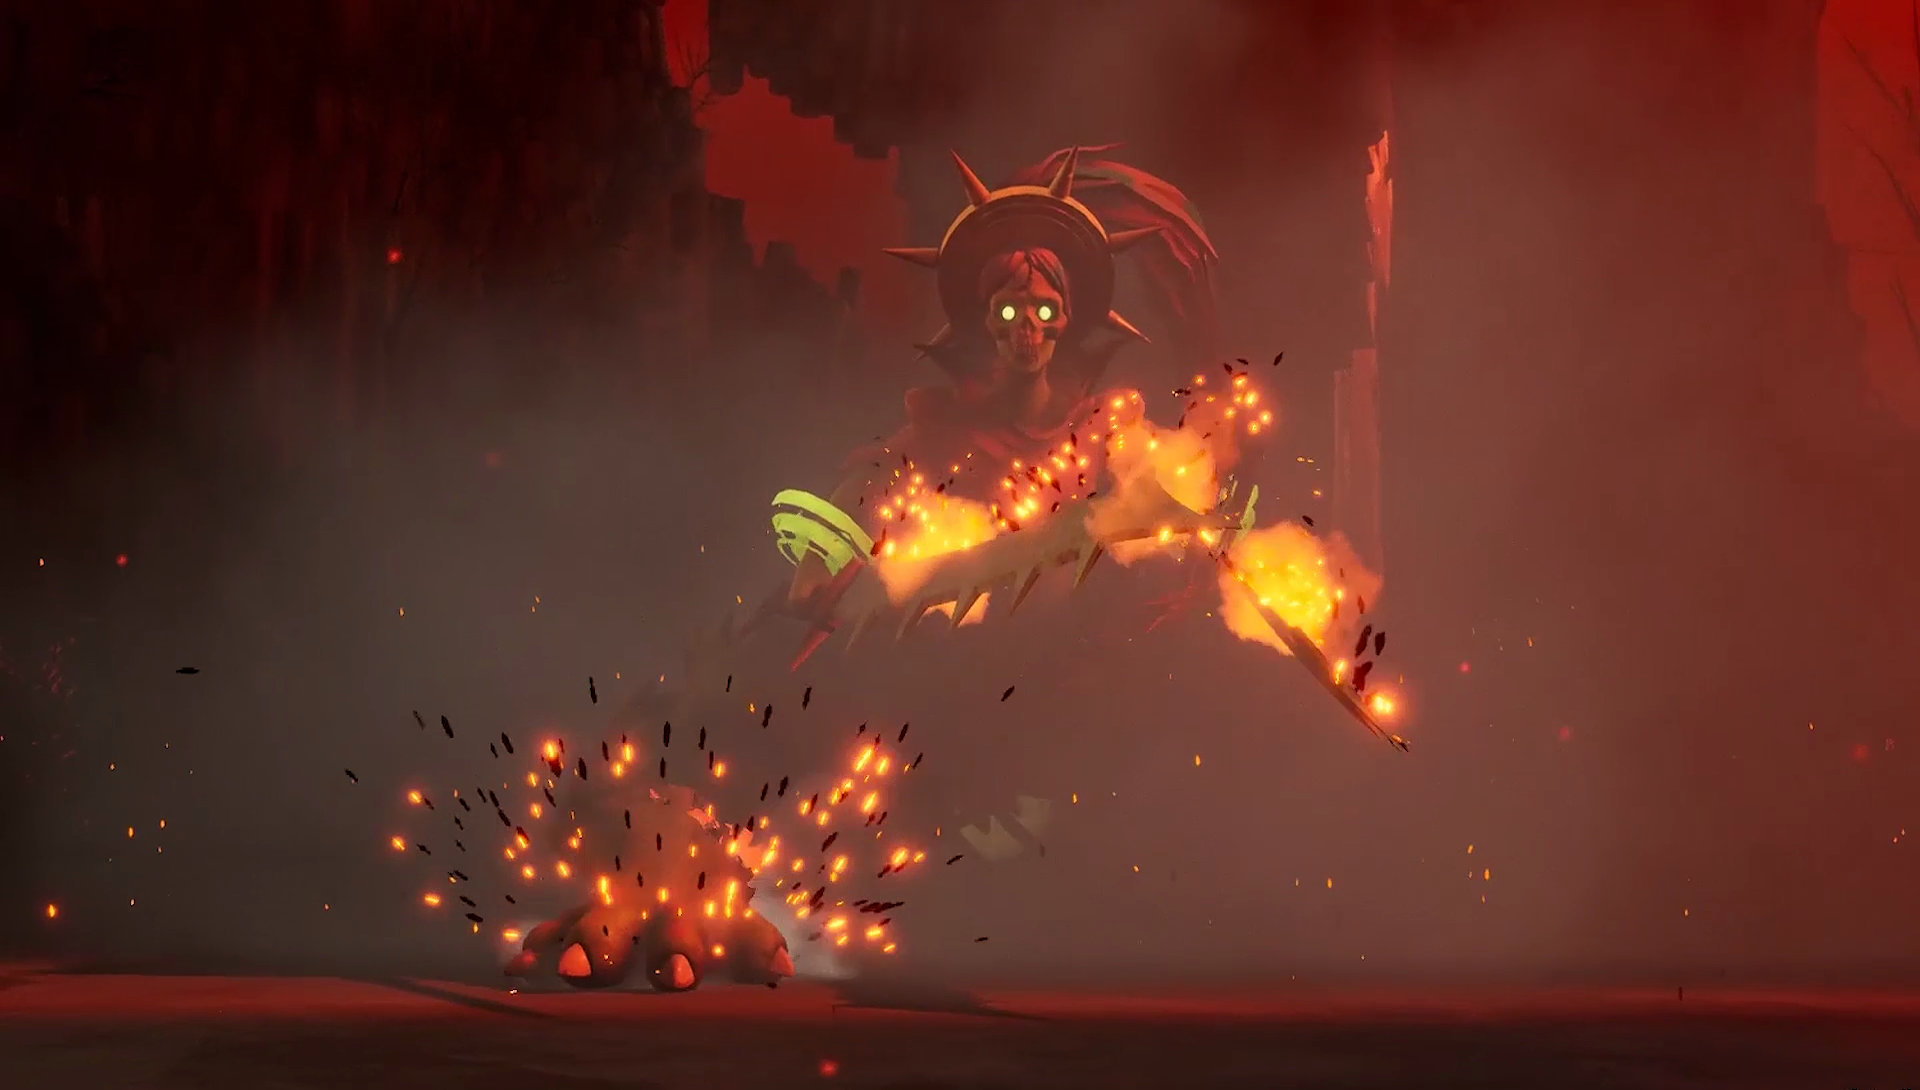 A flame-covered nightmarish creature runs through billowing smog and smoke, clutching swords.